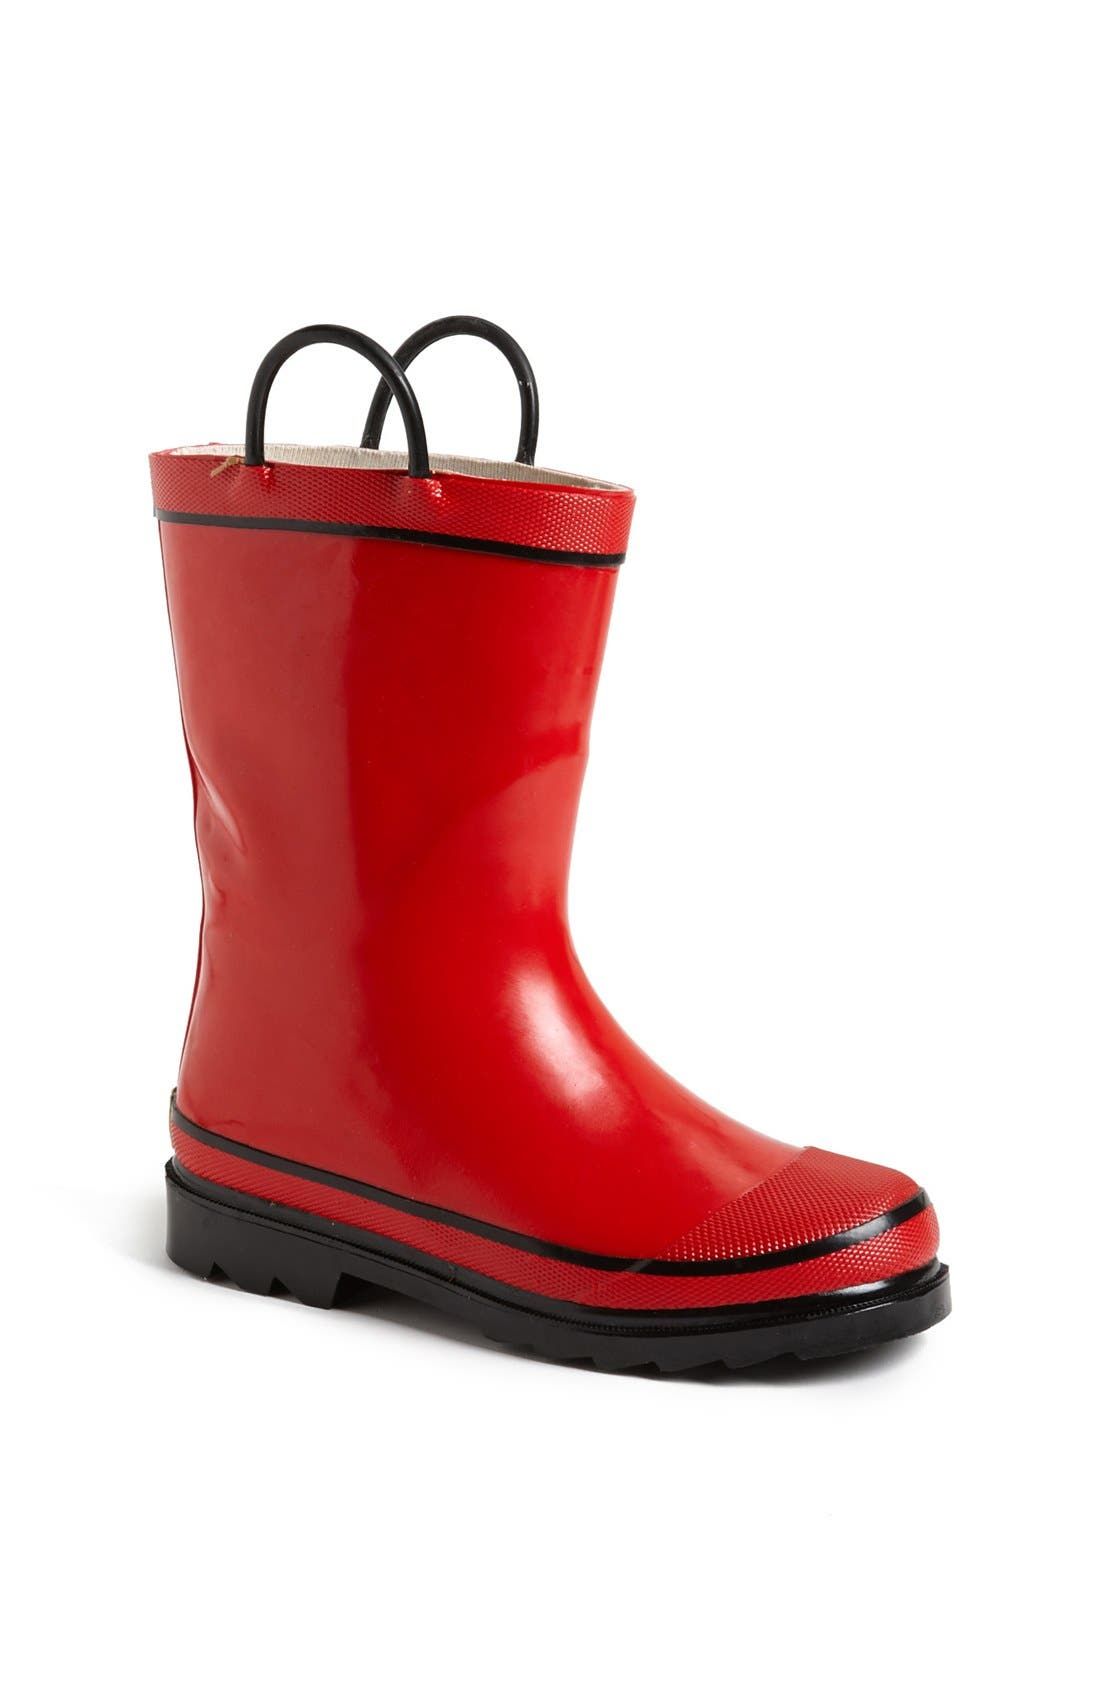 Western Chief 'Firechief 2' Rain Boot  (Walker, Toddler, Little Kid & Big Kid)